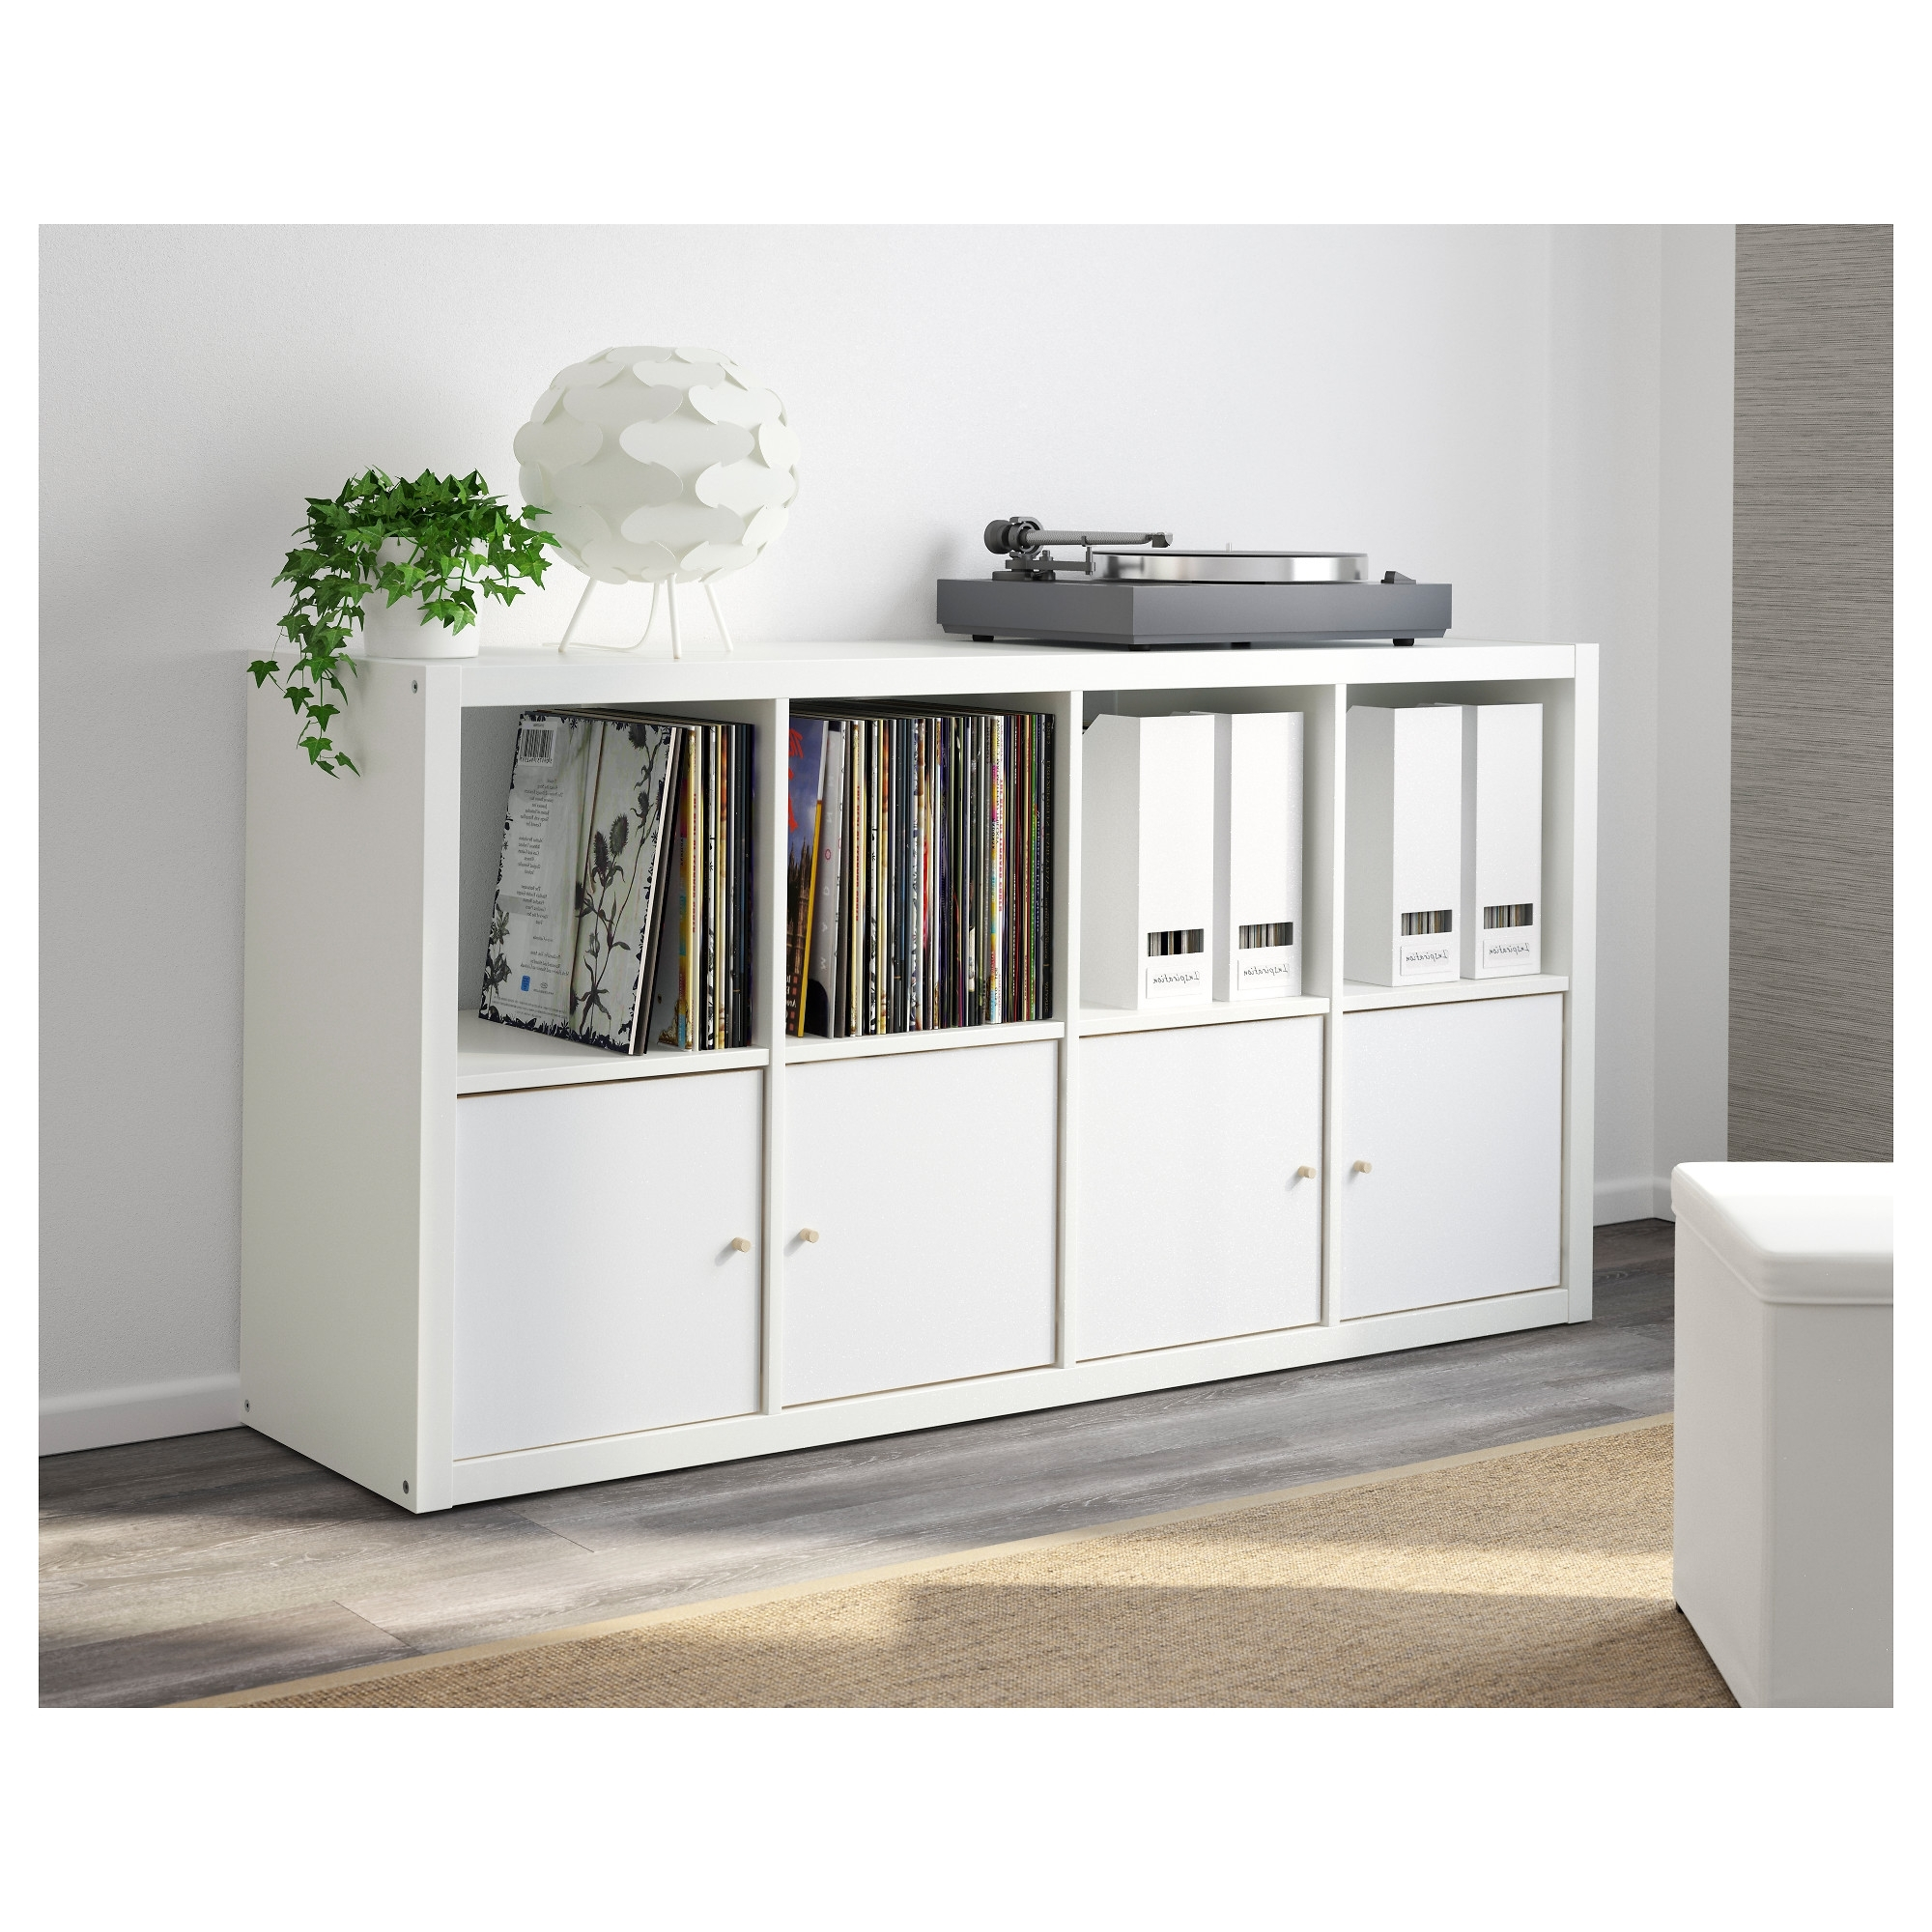 Preferred Ikea Kallax Bookcases In Kallax Shelving Unit White 77x147 Cm – Ikea (View 13 of 15)